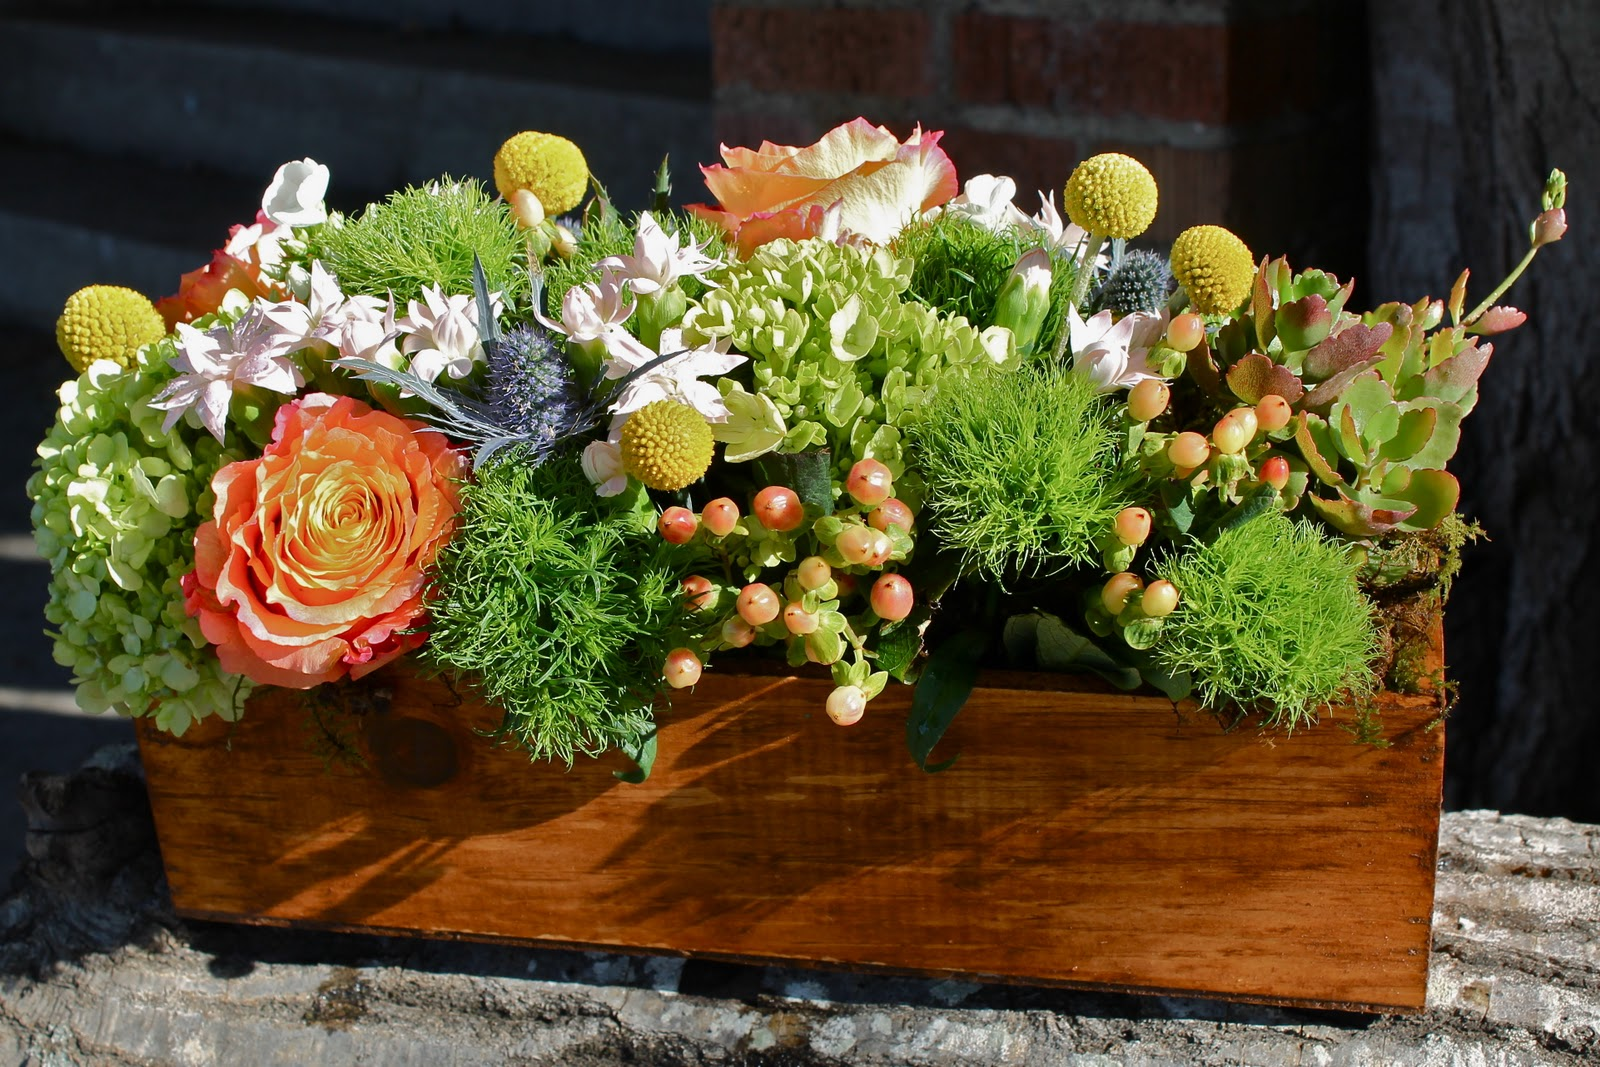 Nicole hamm designs wooden box arrangement - Wooden containers for flowers ...